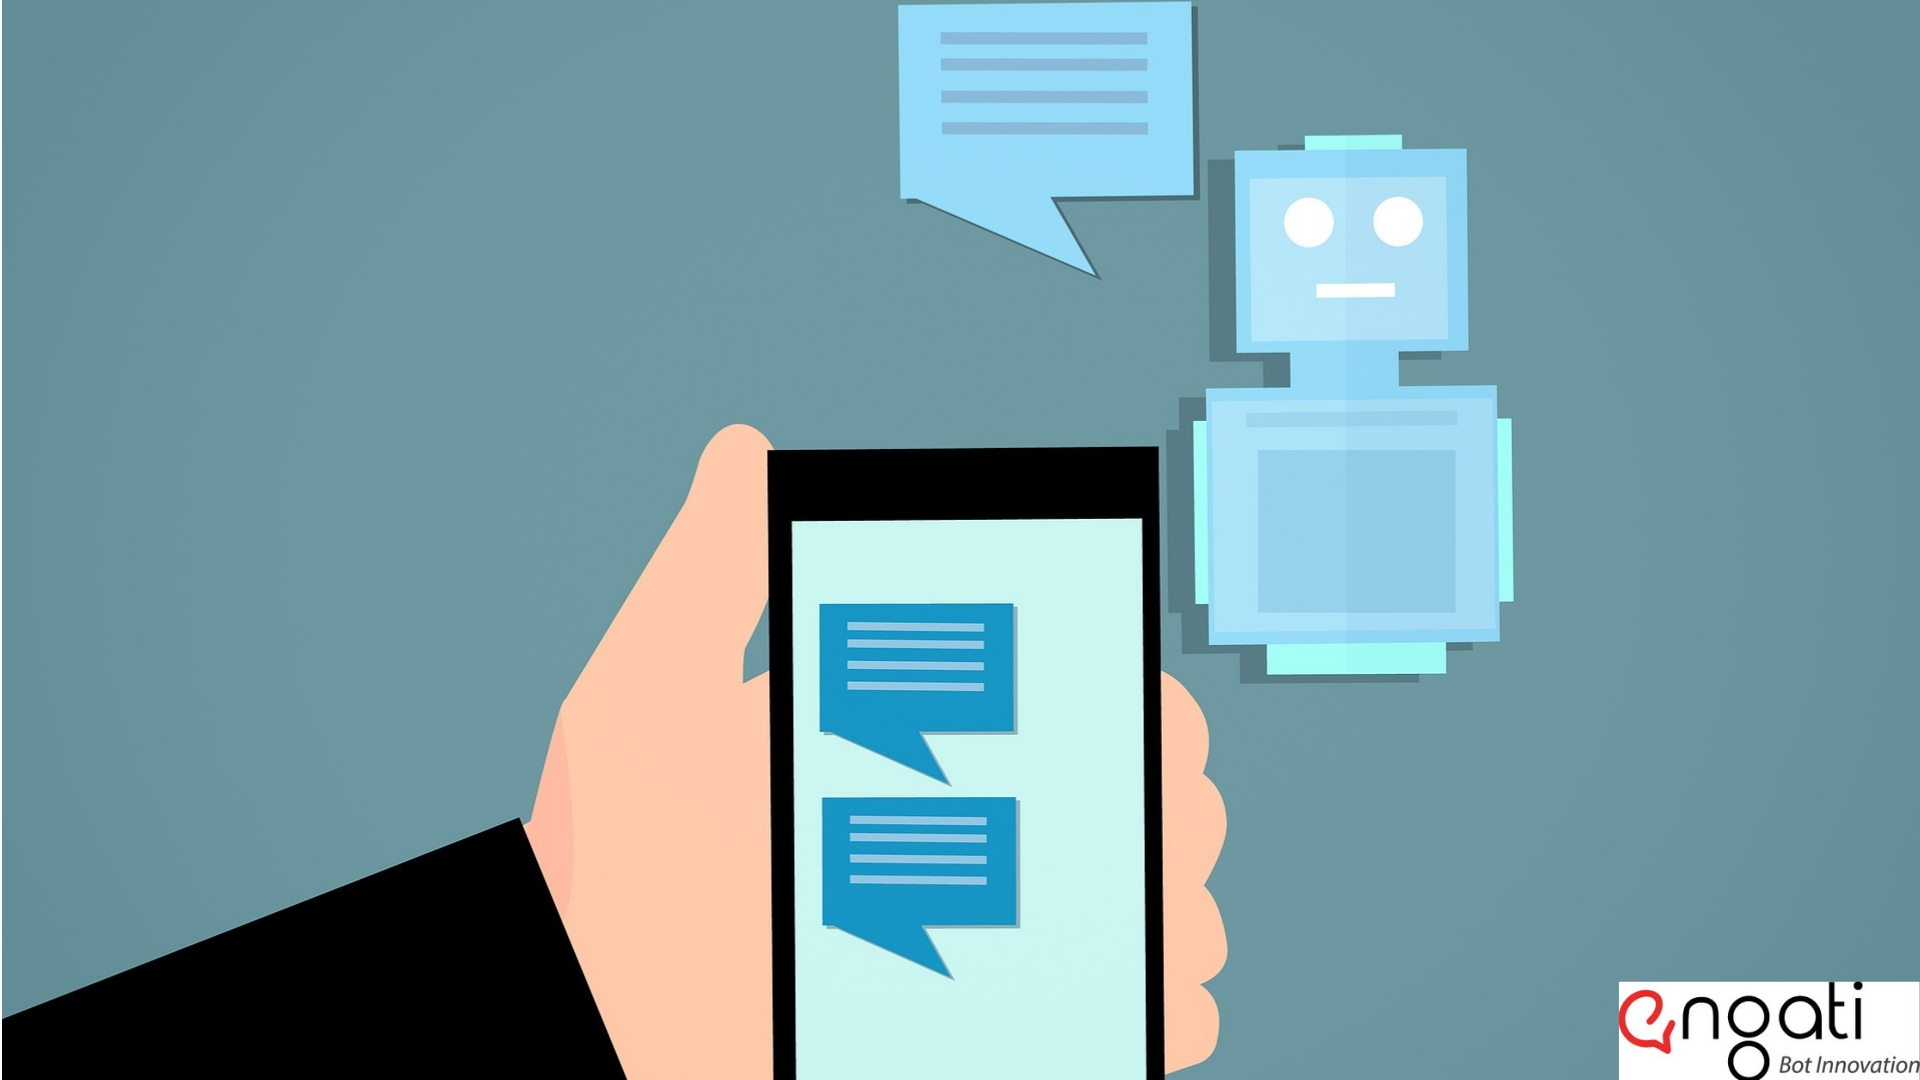 User interacts with the chatbot | Engati